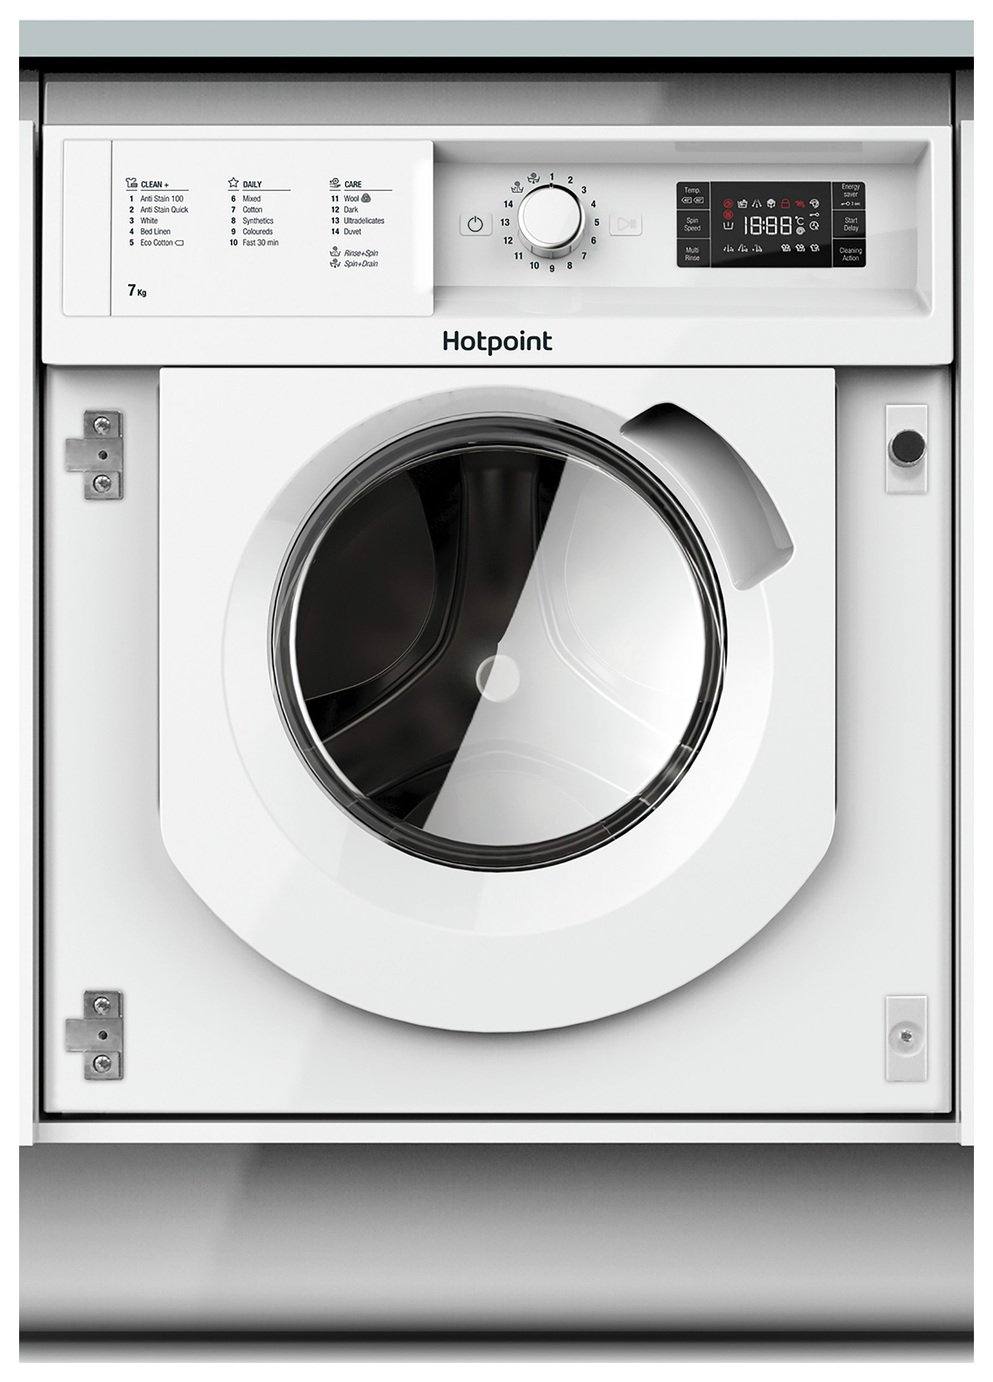 Hotpoint BIWMHG71484 7KG 1400 Spin Washing Machine - White